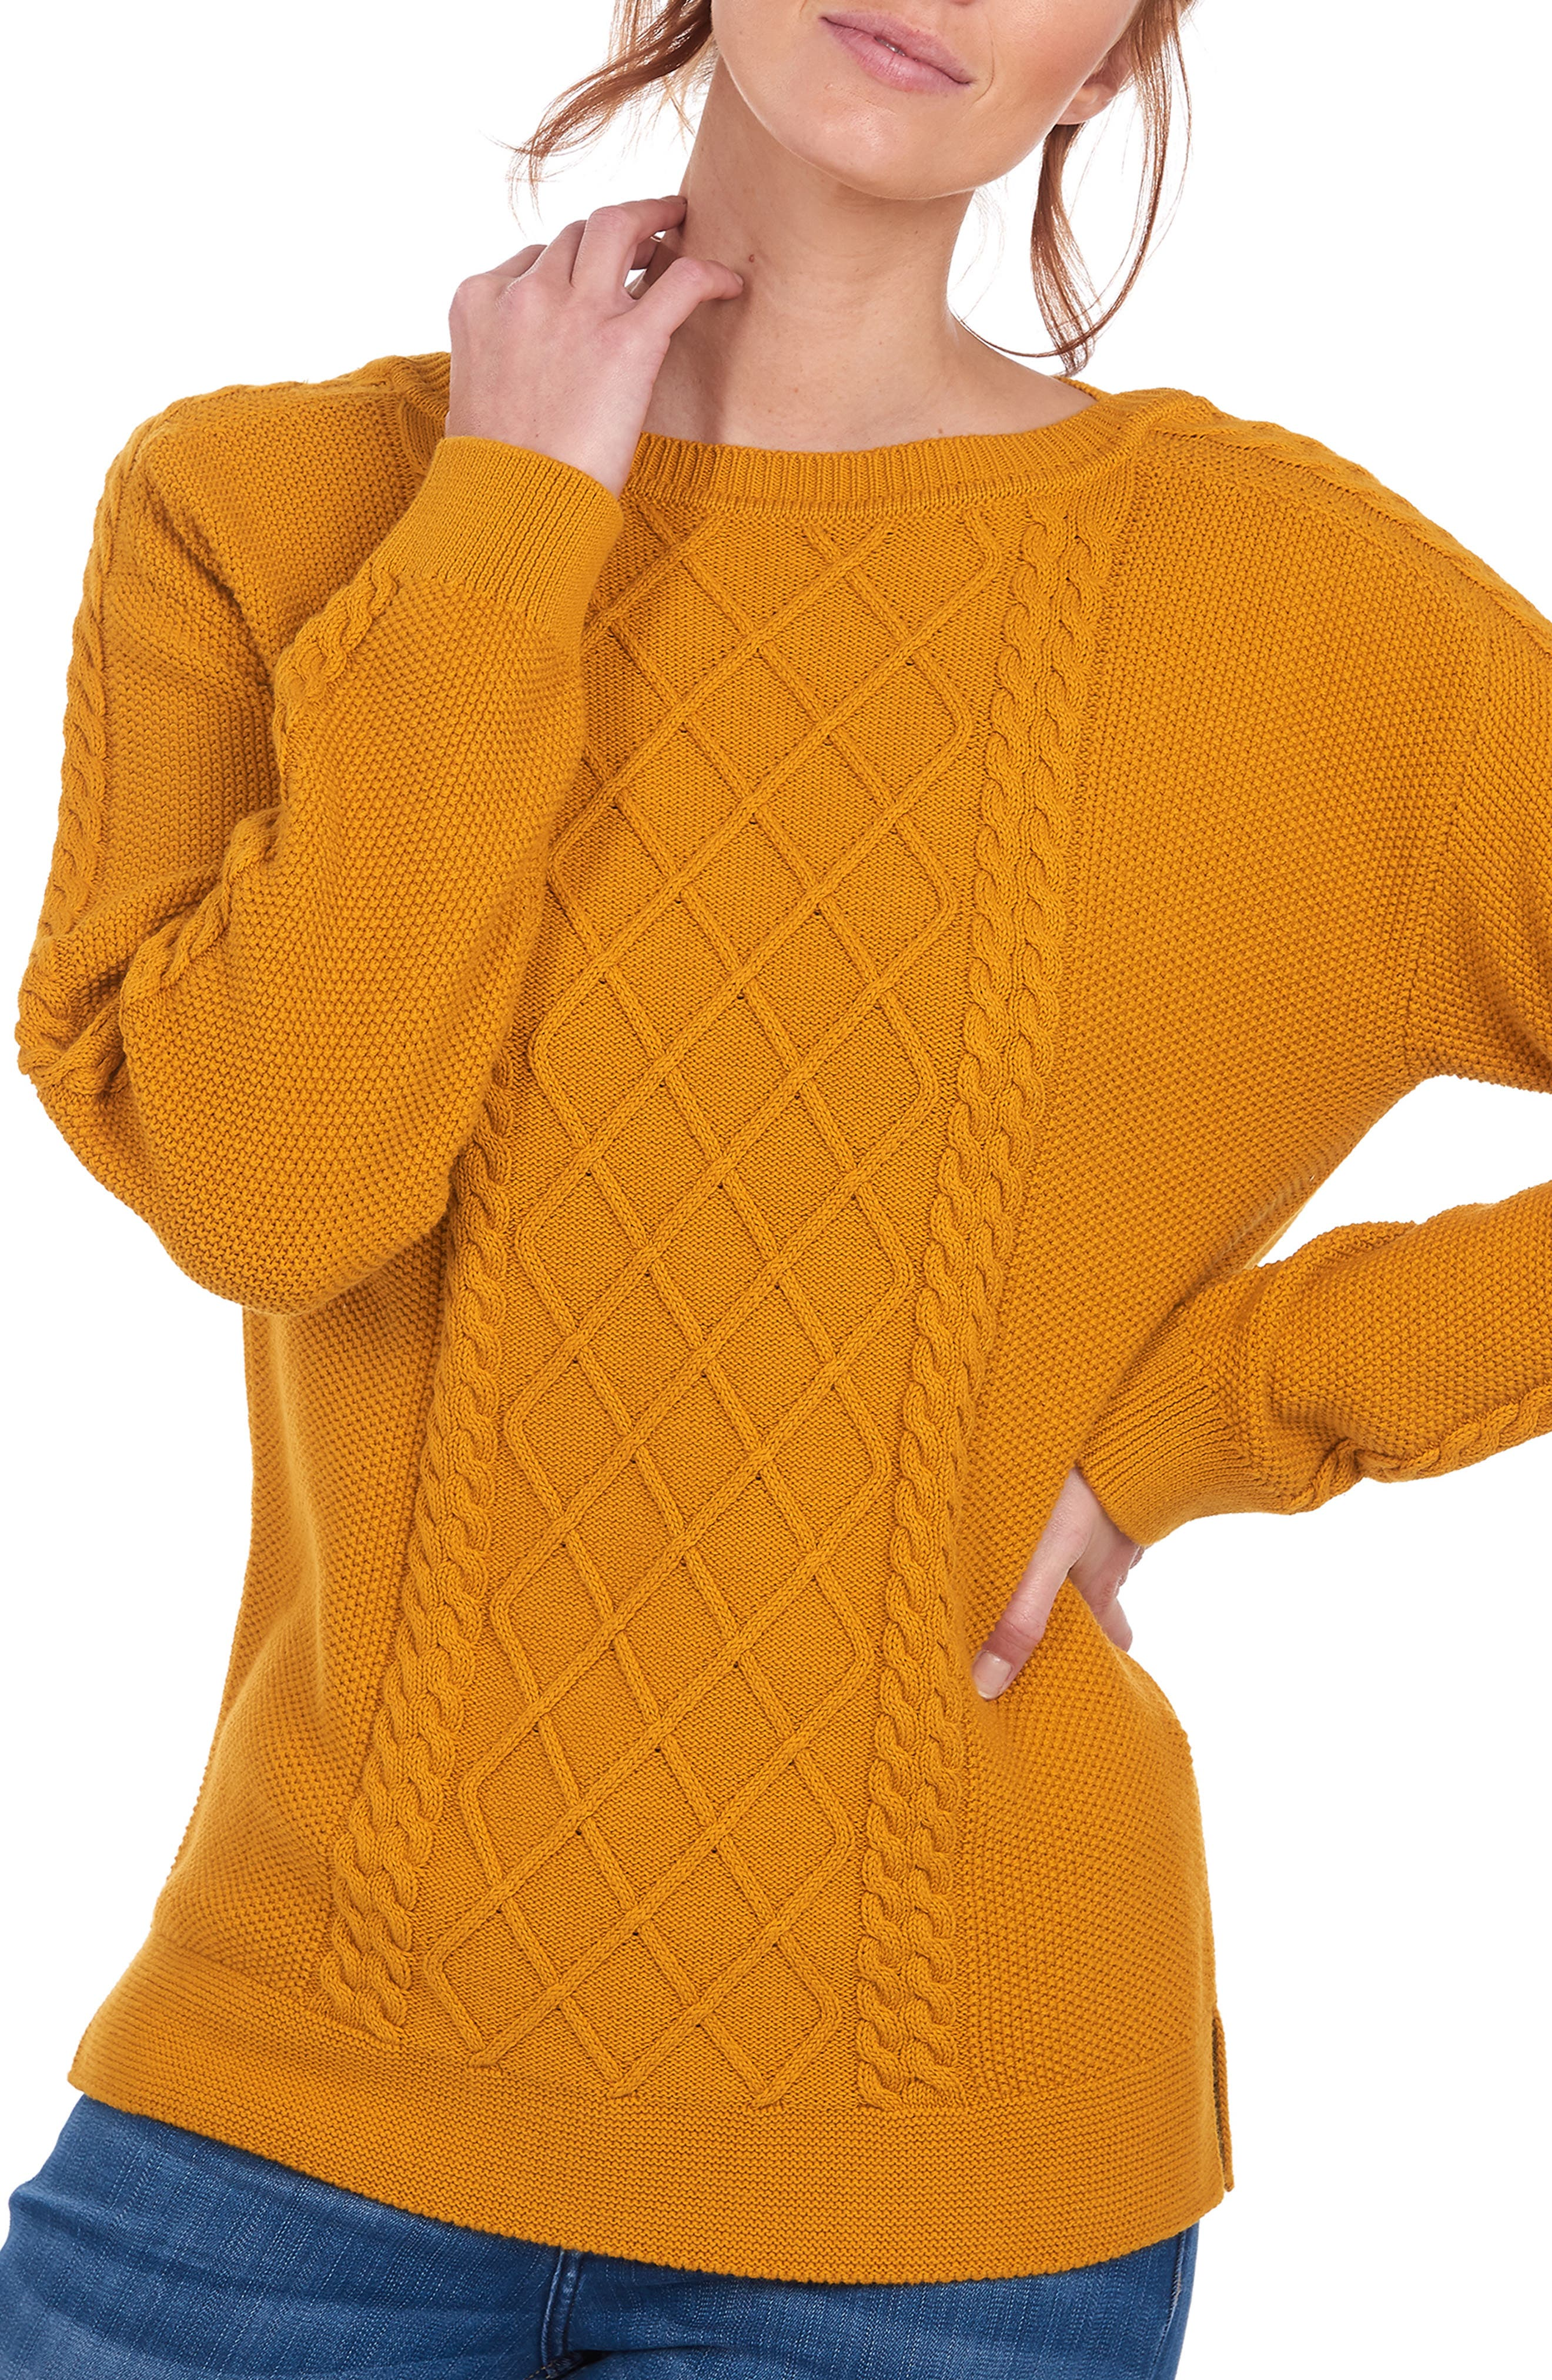 A lattice-knit front and classic cable accents create a sophisticated mix of textures on this soft cotton sweater. Style Name: Barbour Stokehold Lattice Knit Sweater. Style Number: 6088426. Available in stores.